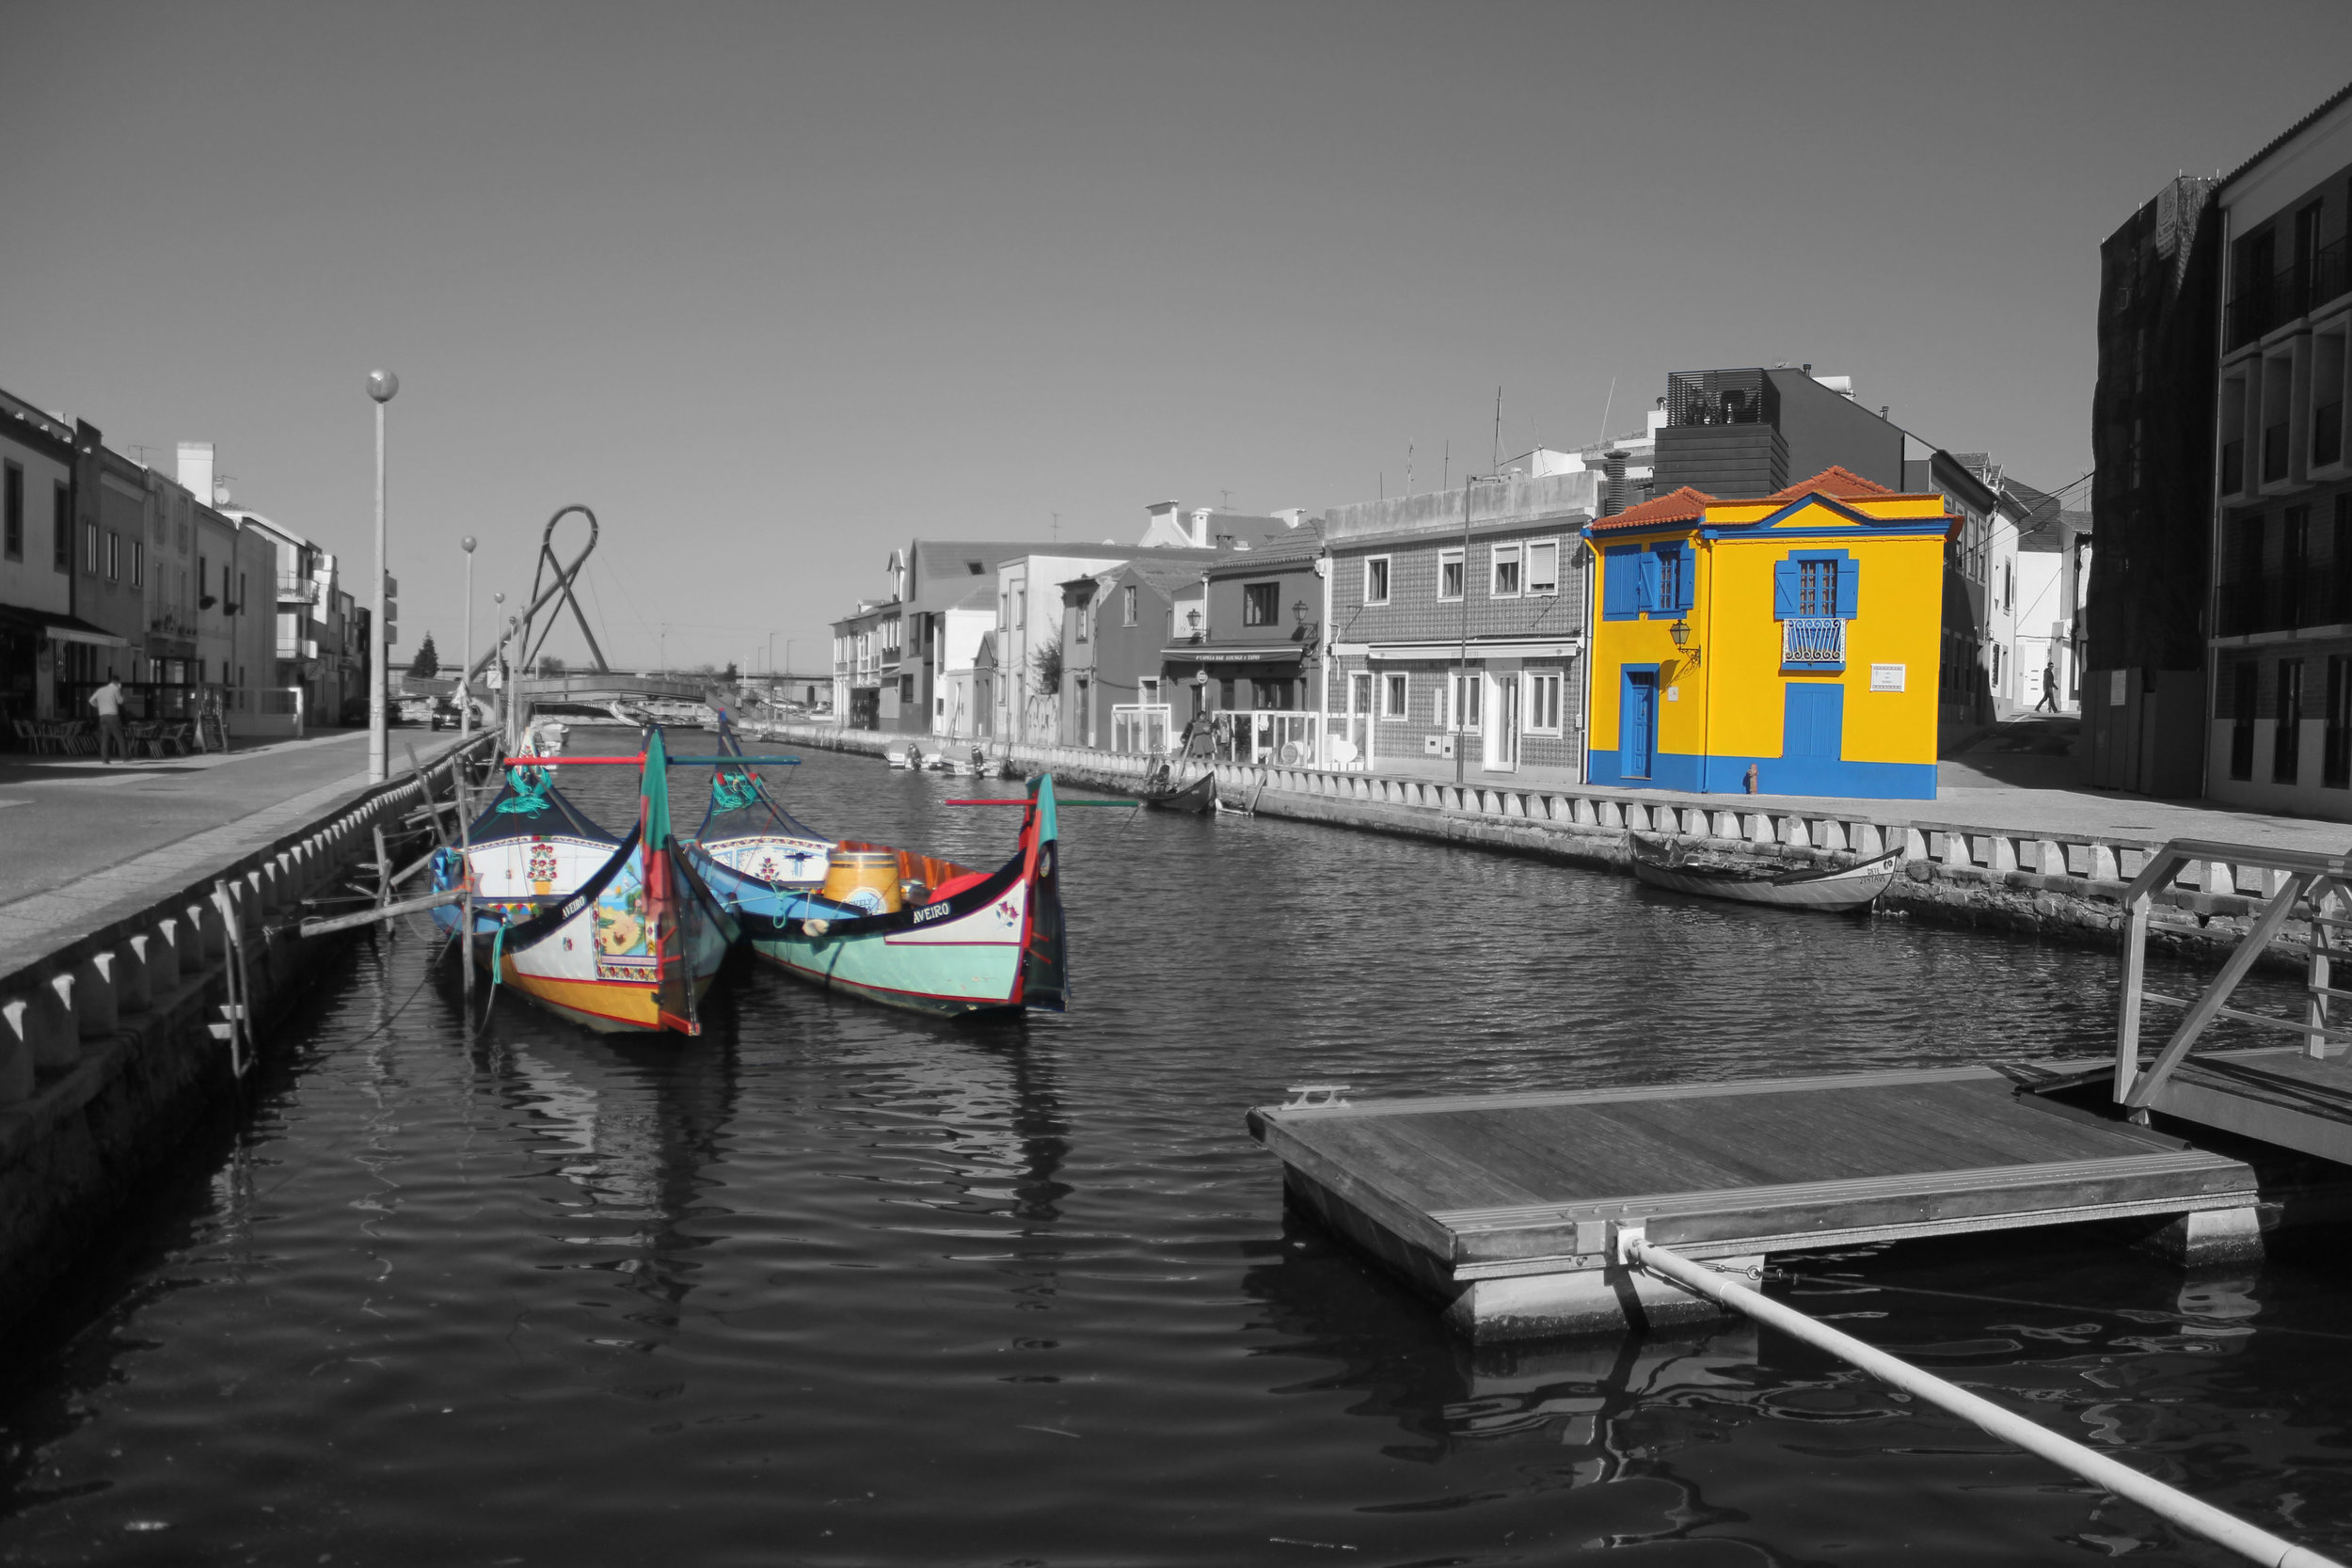 A city navigated by barcos moliceiros - Aveiro, Portugal (Captured by Emily Sproule)